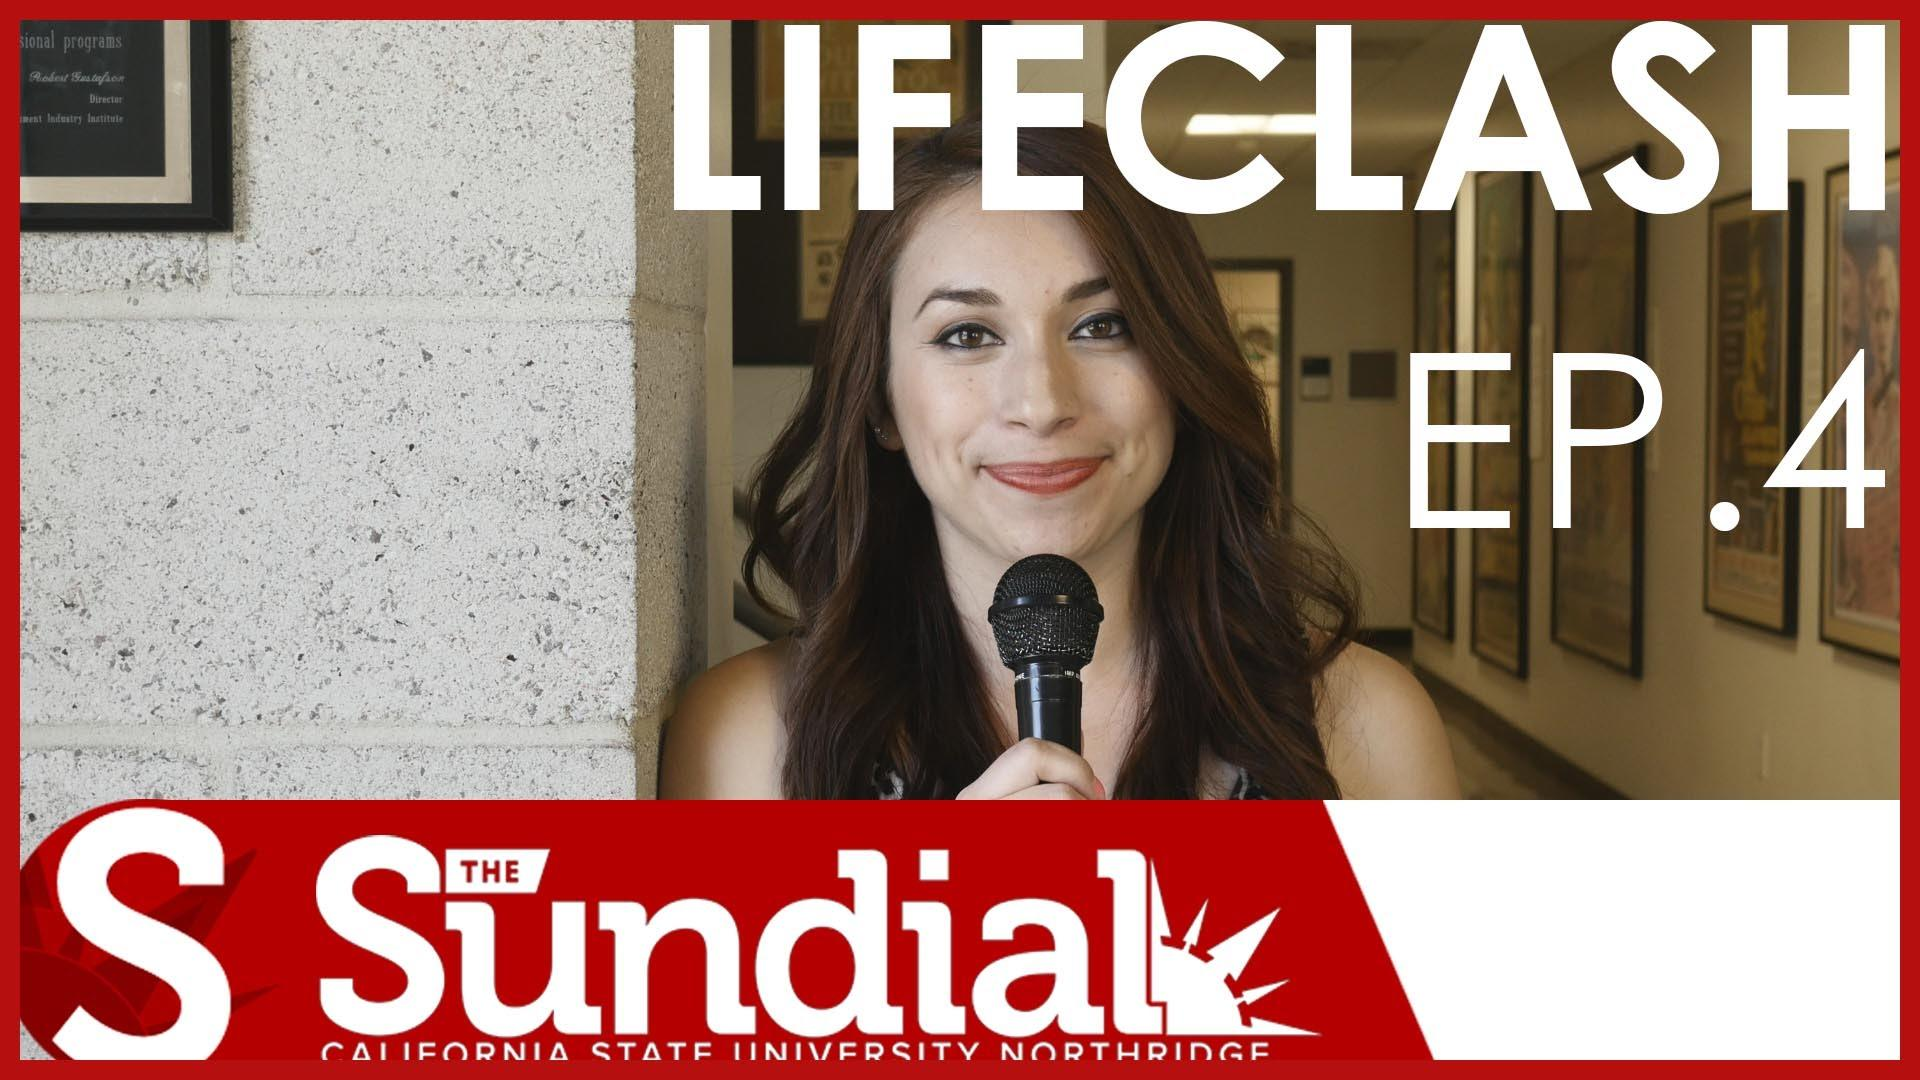 College life: Local Cafe for Midterms – Lifeclash Episode 4